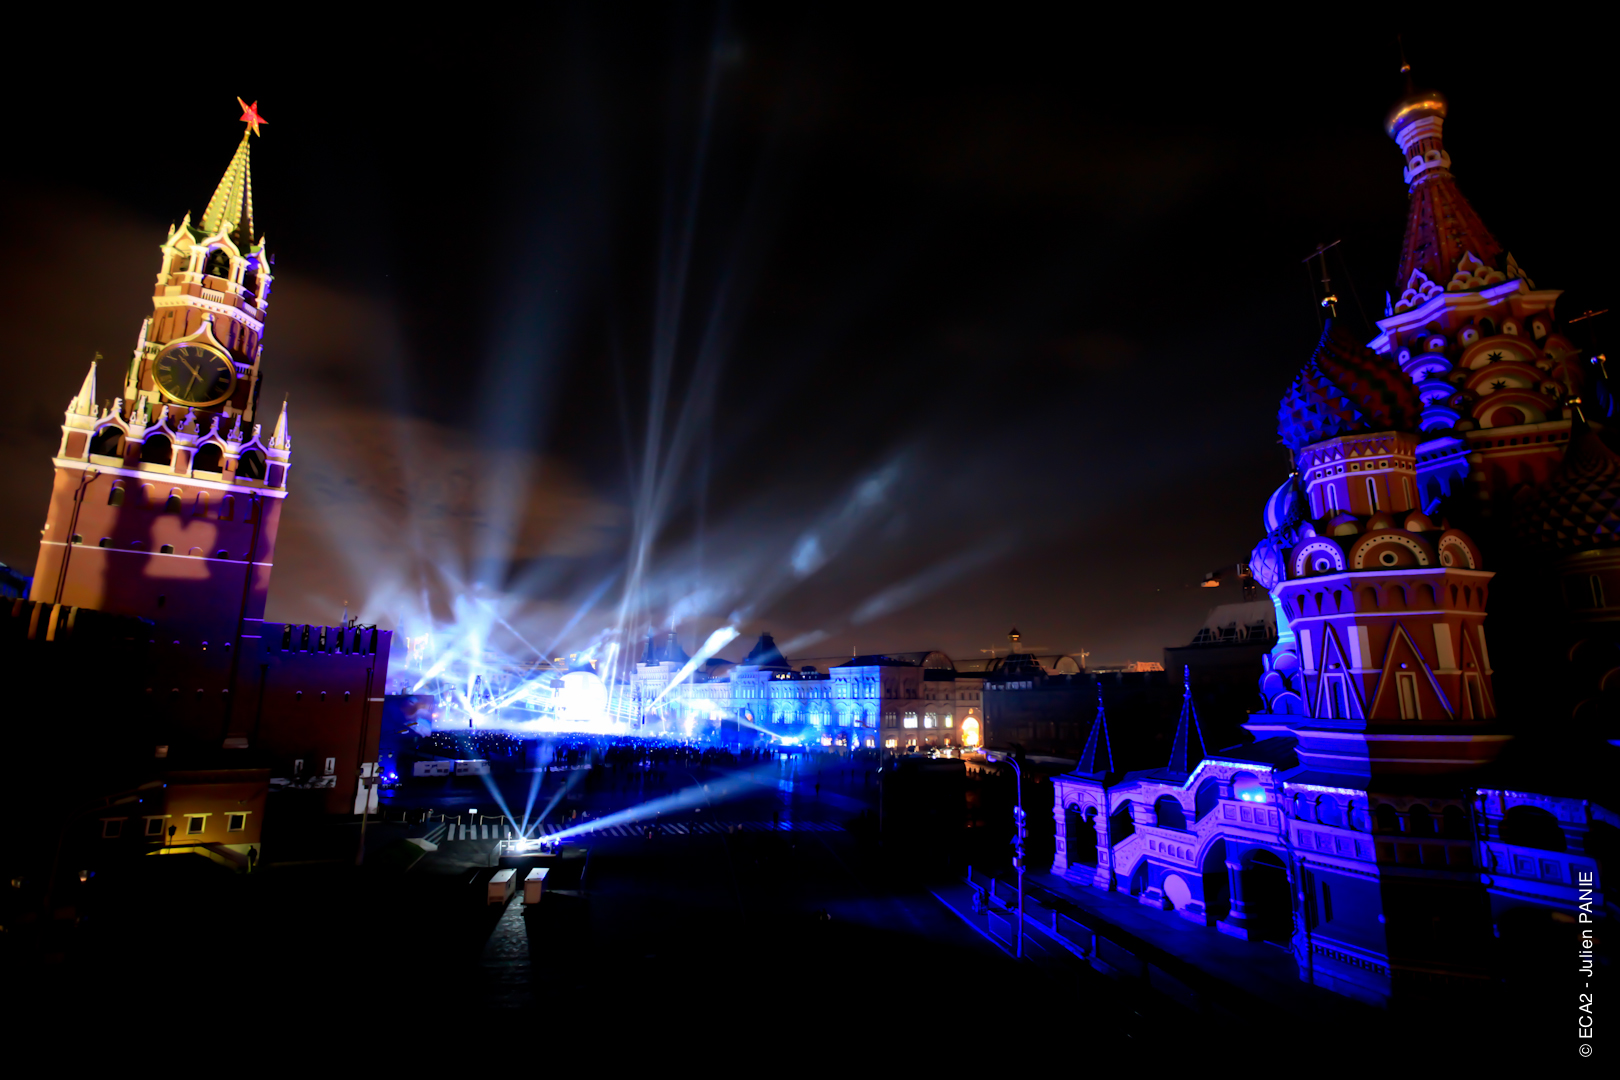 Festival of Light in Moscow: what was the event in 2017 26